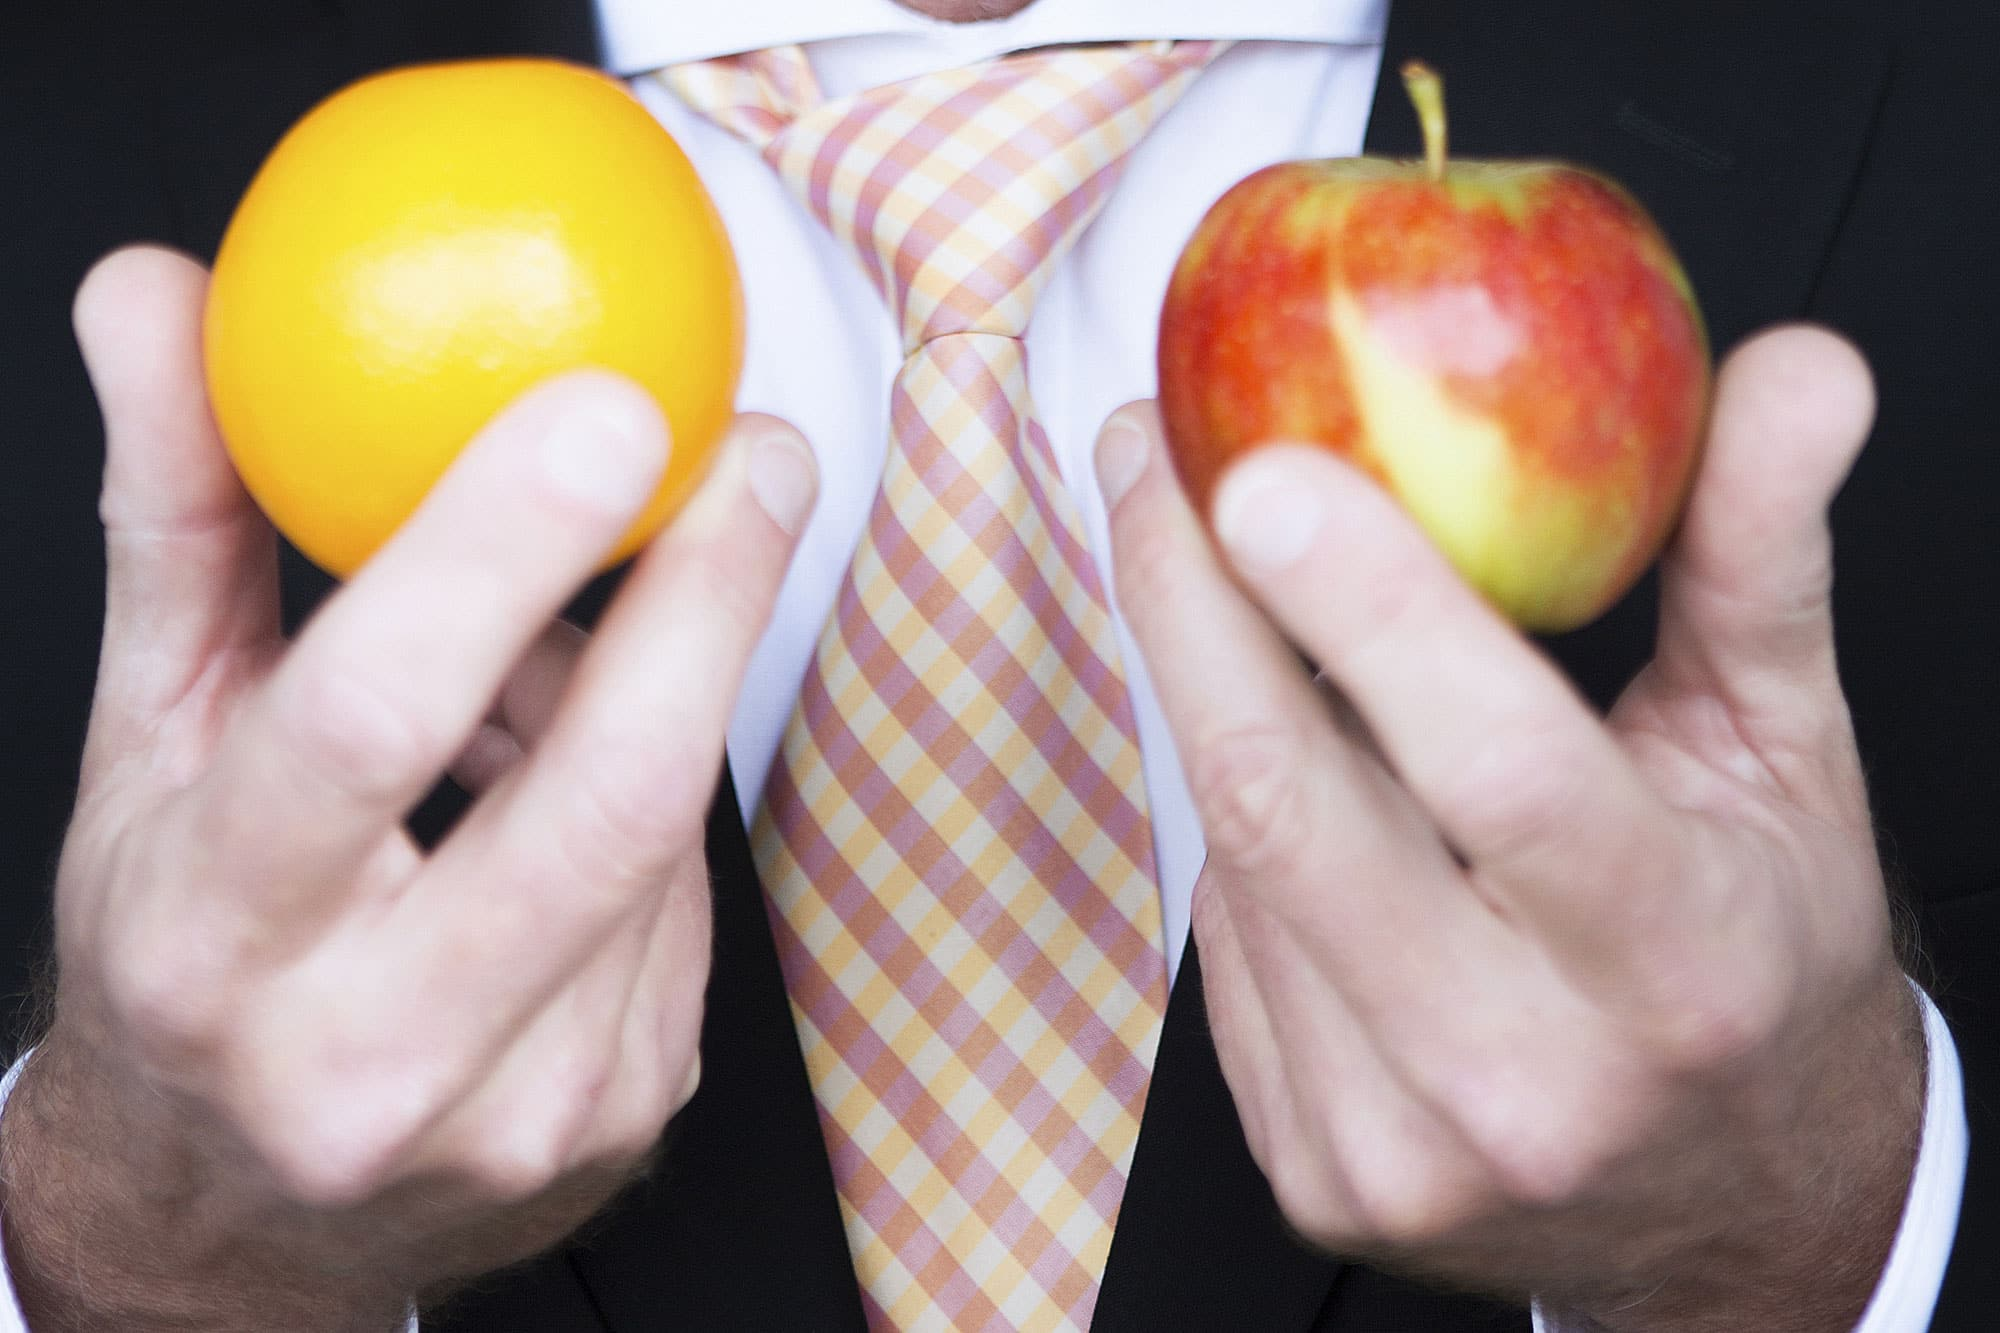 Man in a suit comparing apples and oranges